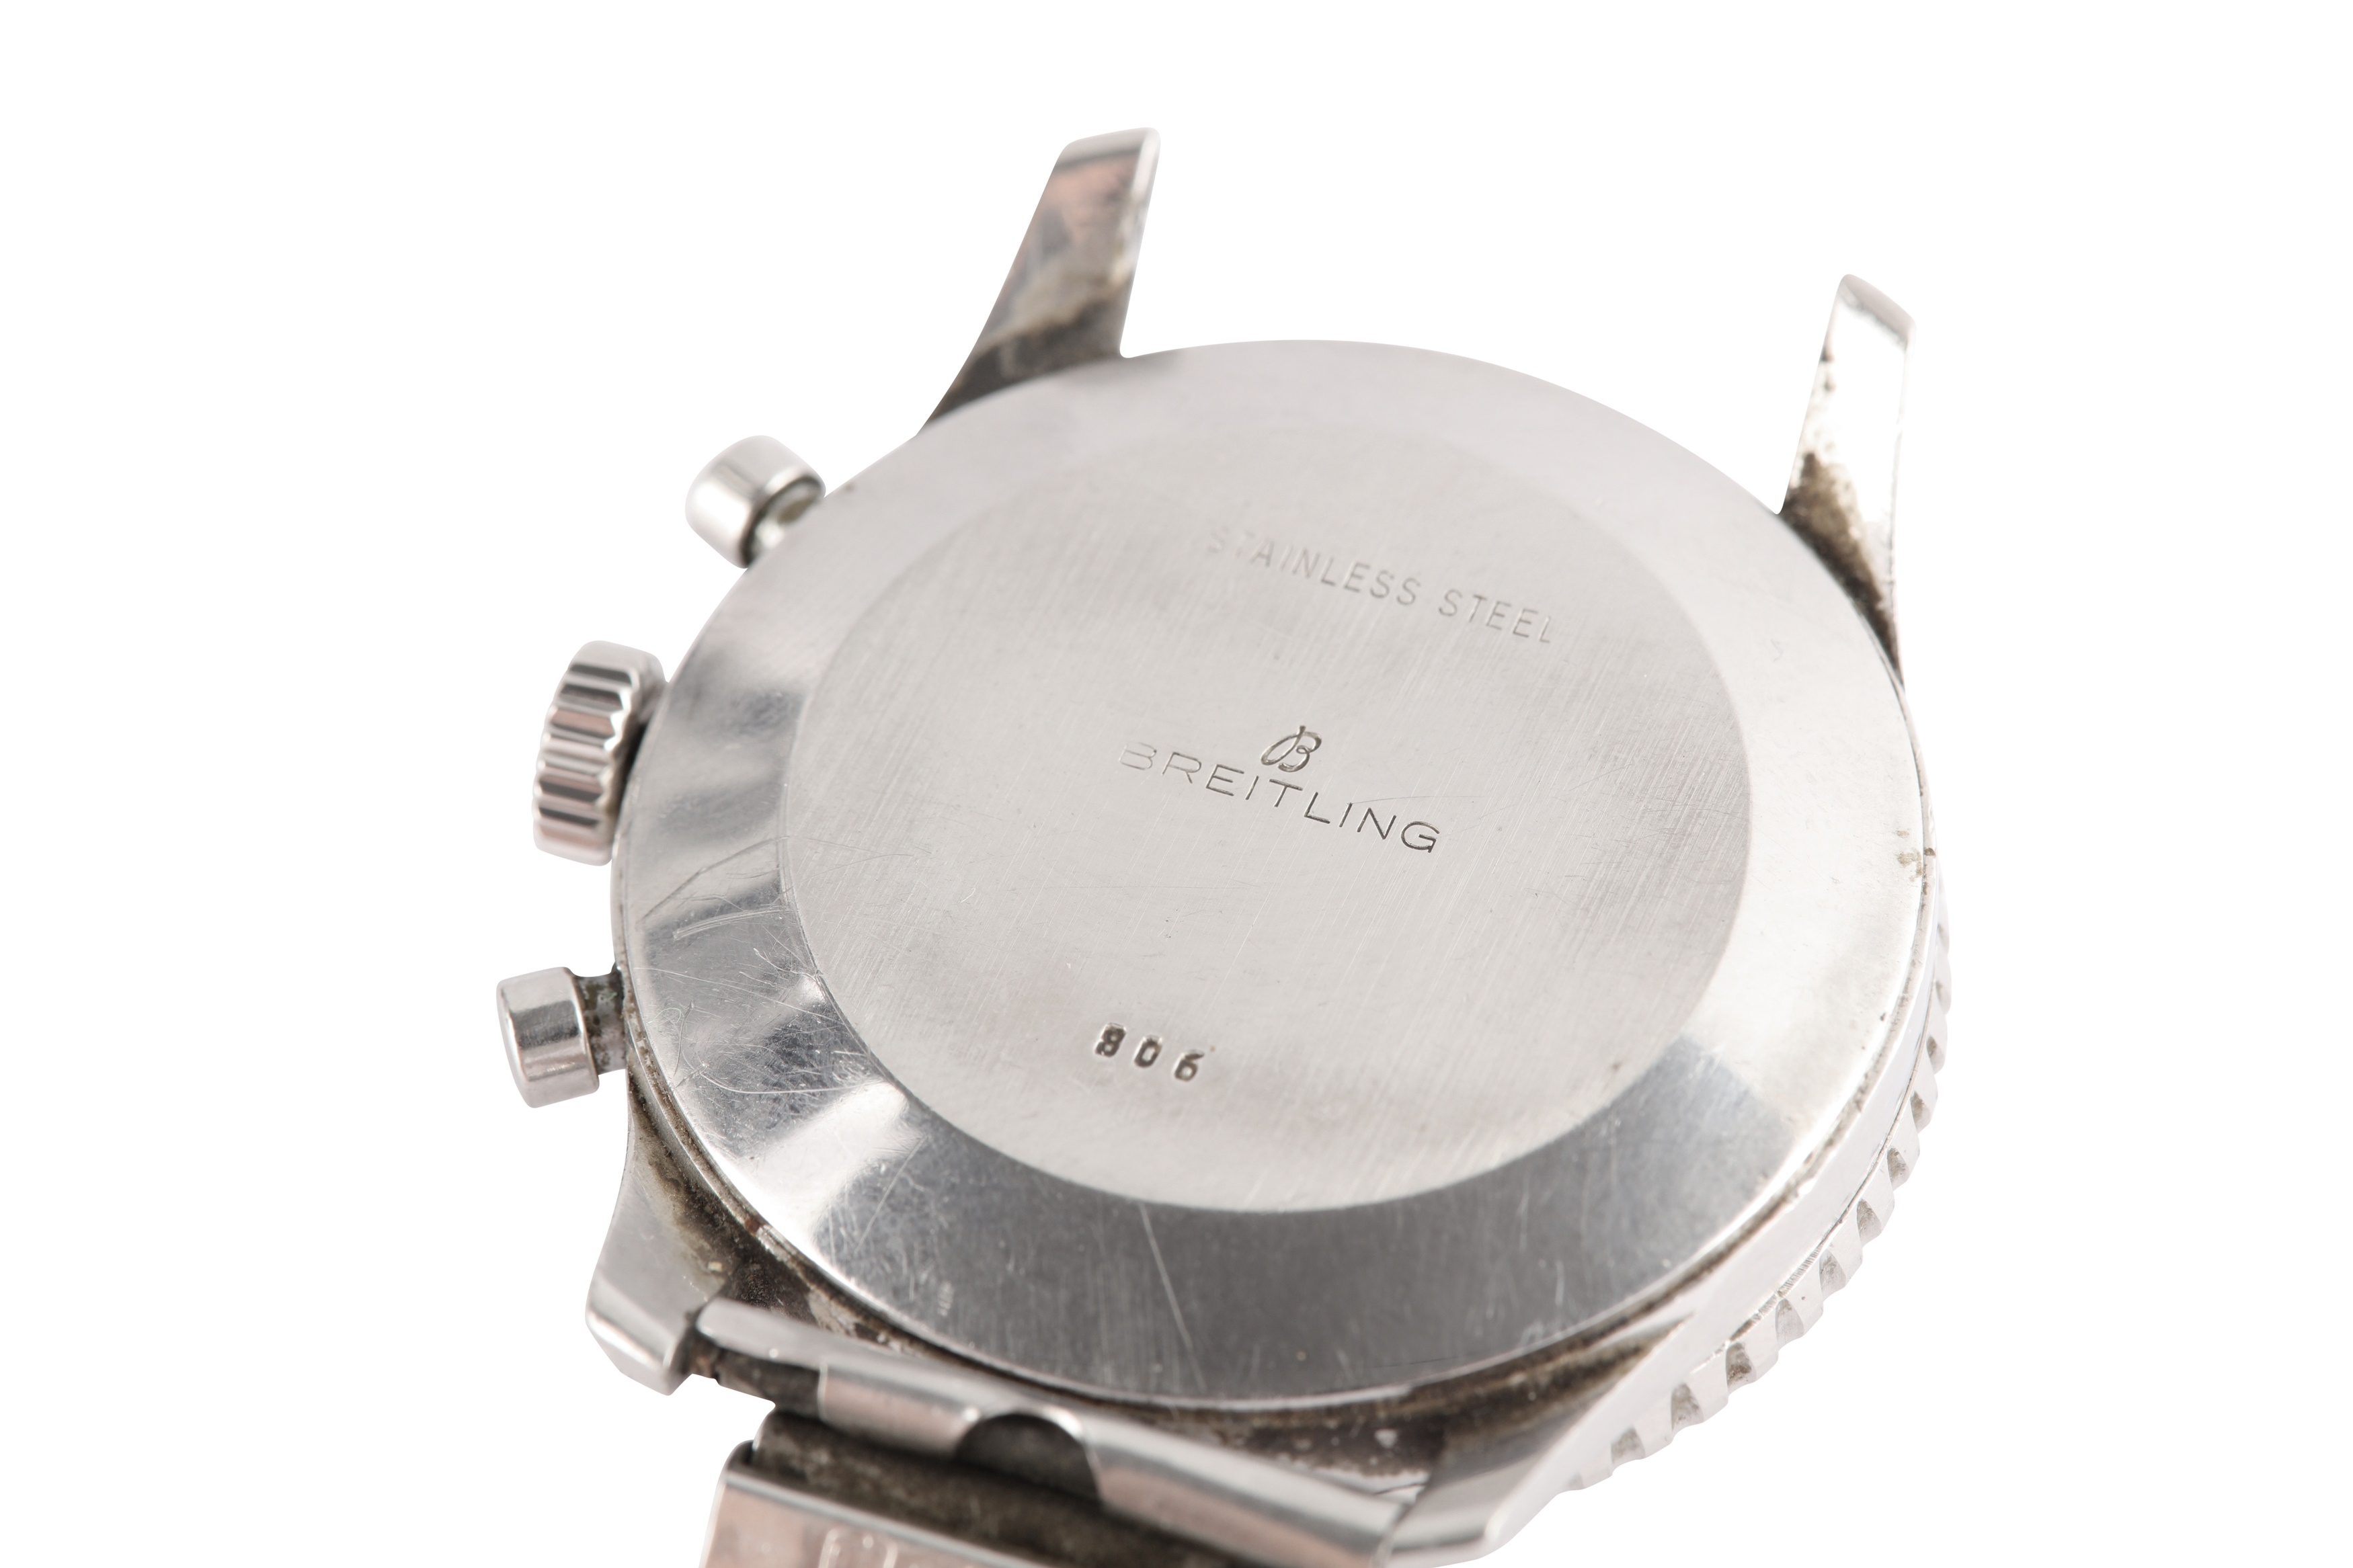 BREITLING. - Image 5 of 8